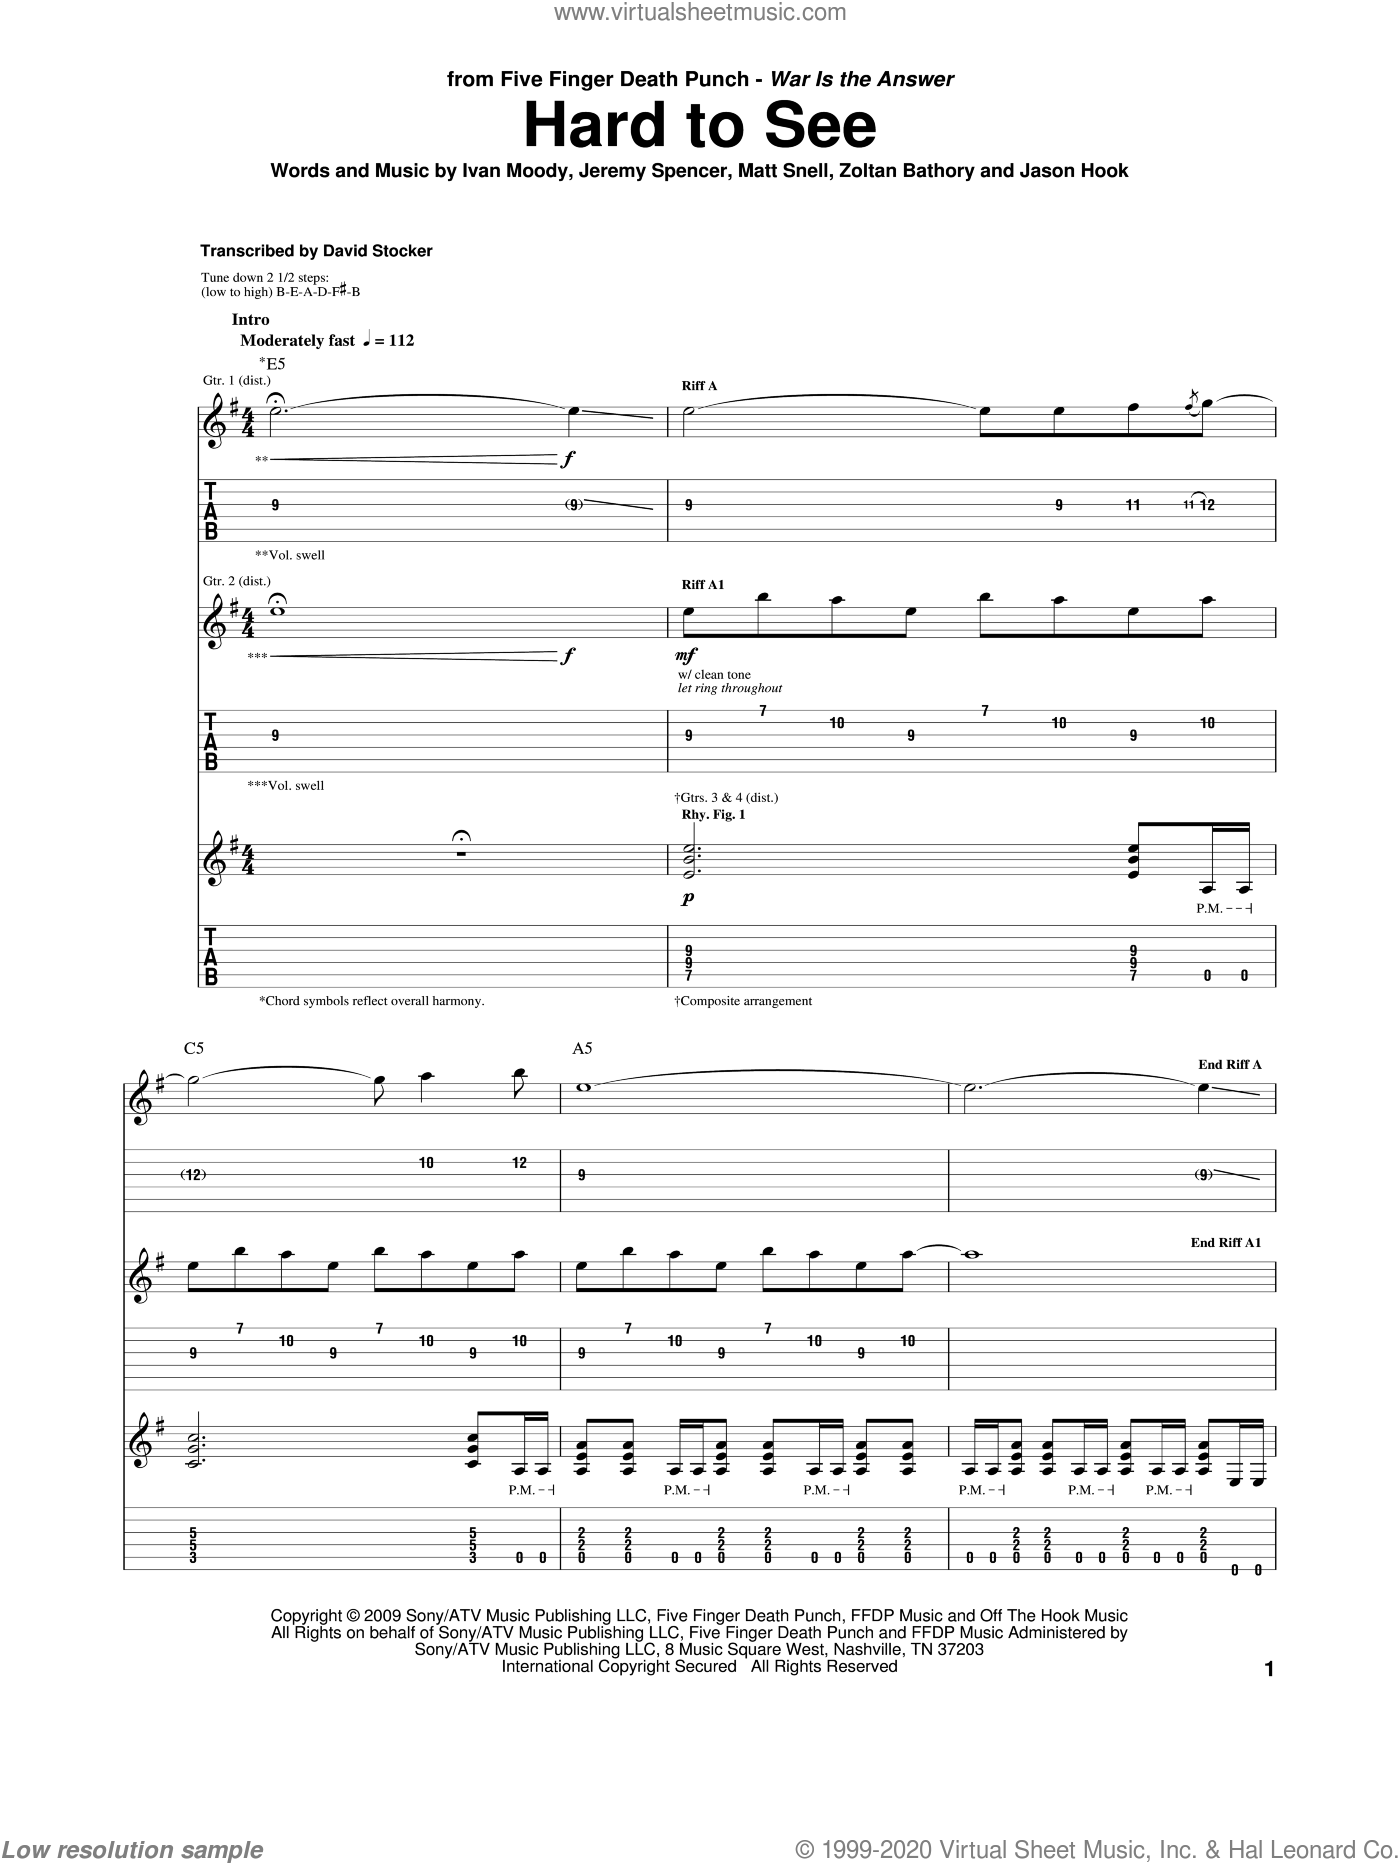 Hard To See sheet music for guitar (tablature) by Zoltan Bathory